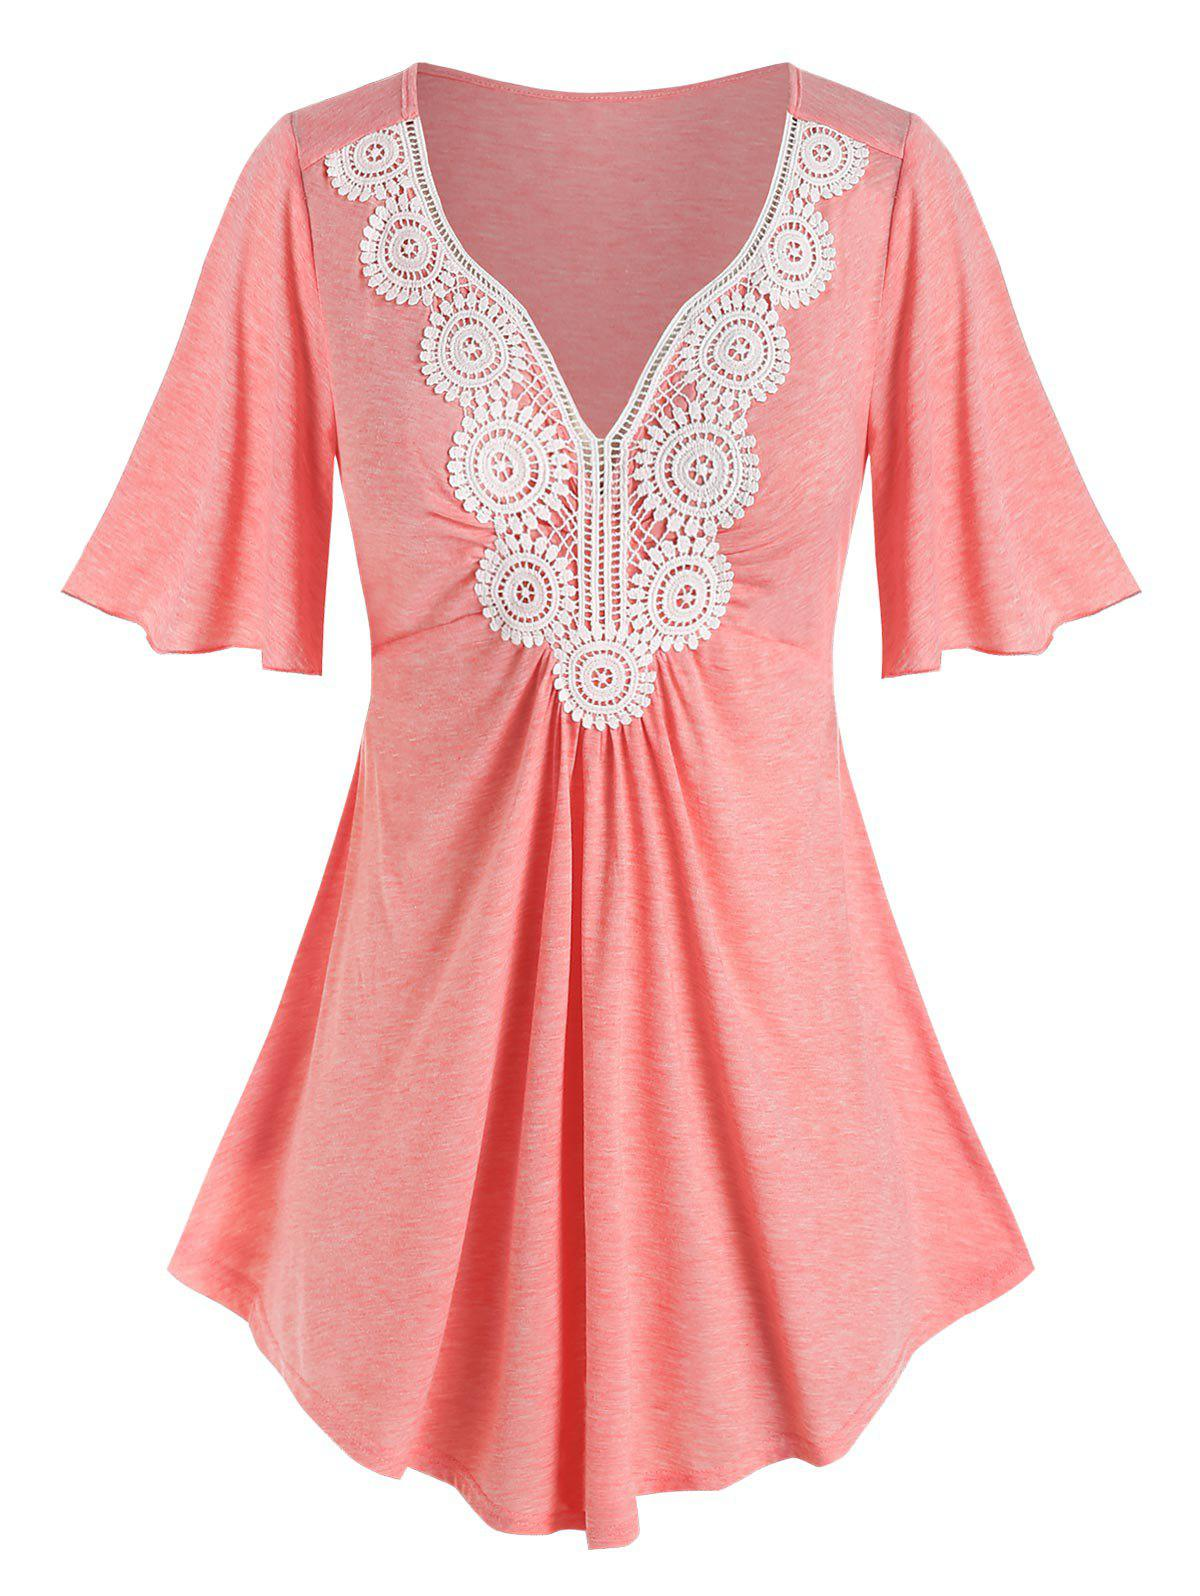 Plus Size Lace Applique Flutter Sleeve T Shirt - LIGHT ORANGE 5X